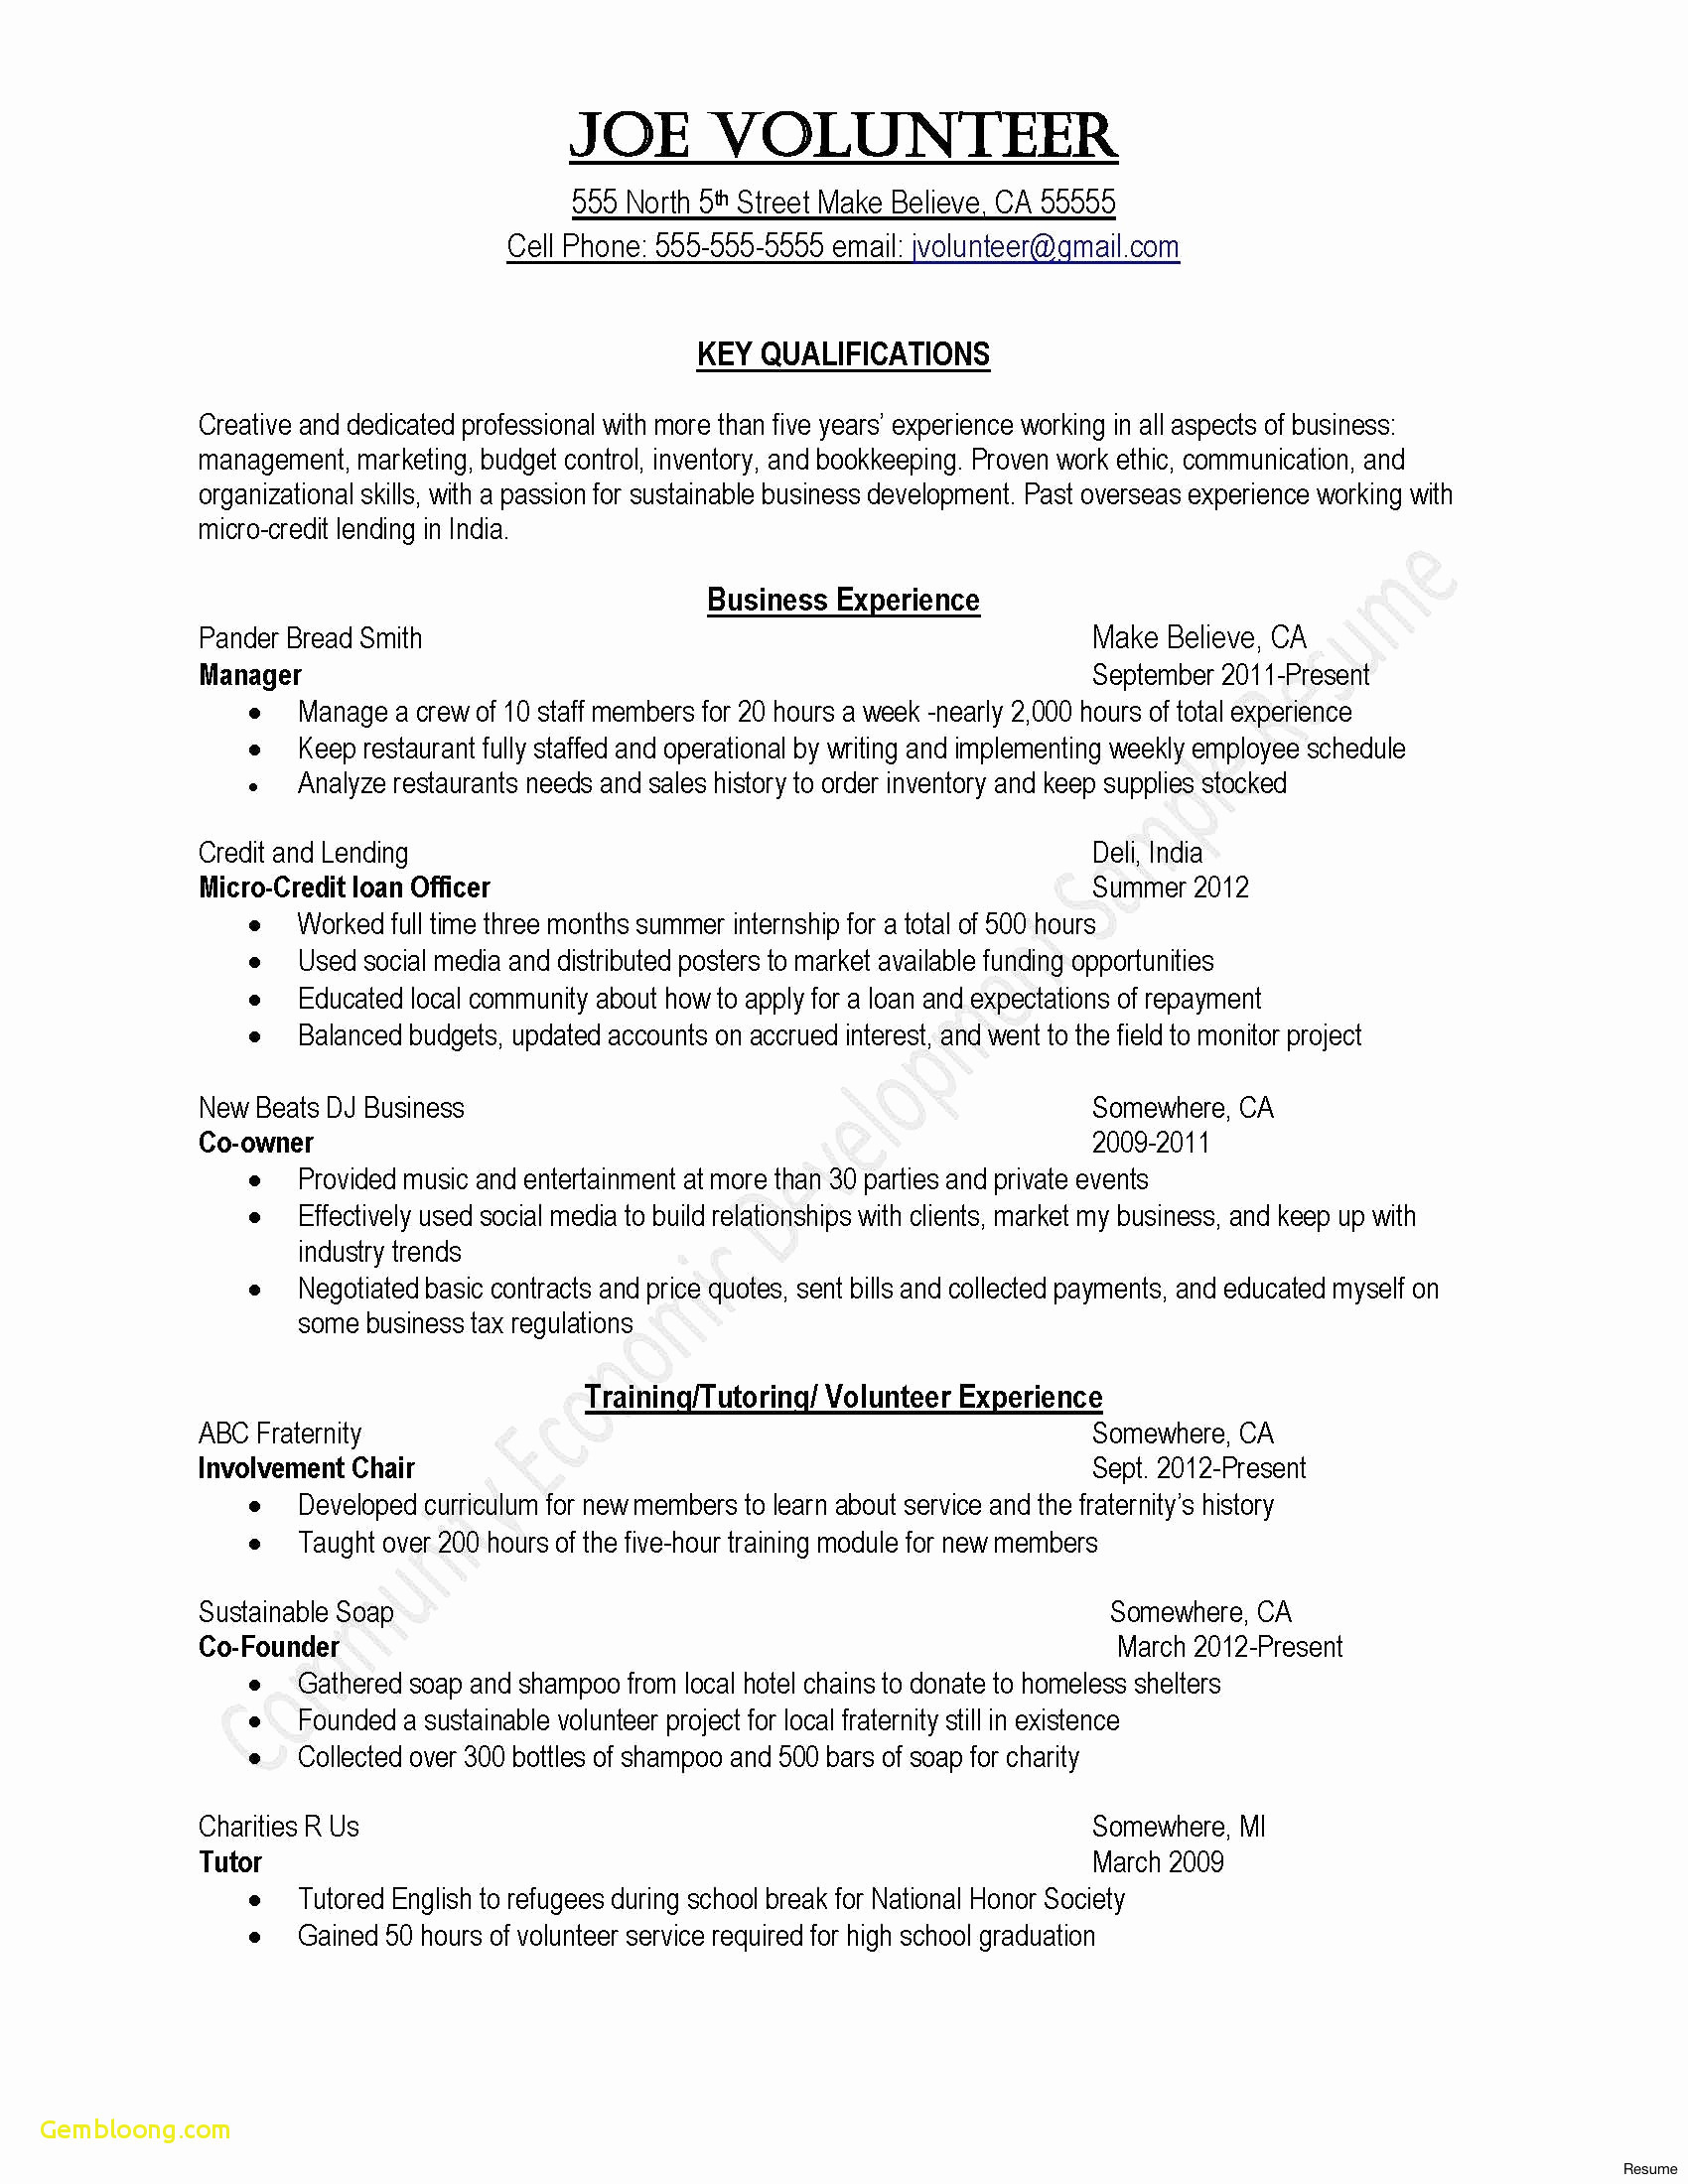 Basic Cover Letter Template Free - Sample Basic Resume Fresh Basic Resume for Any Job New format Cover